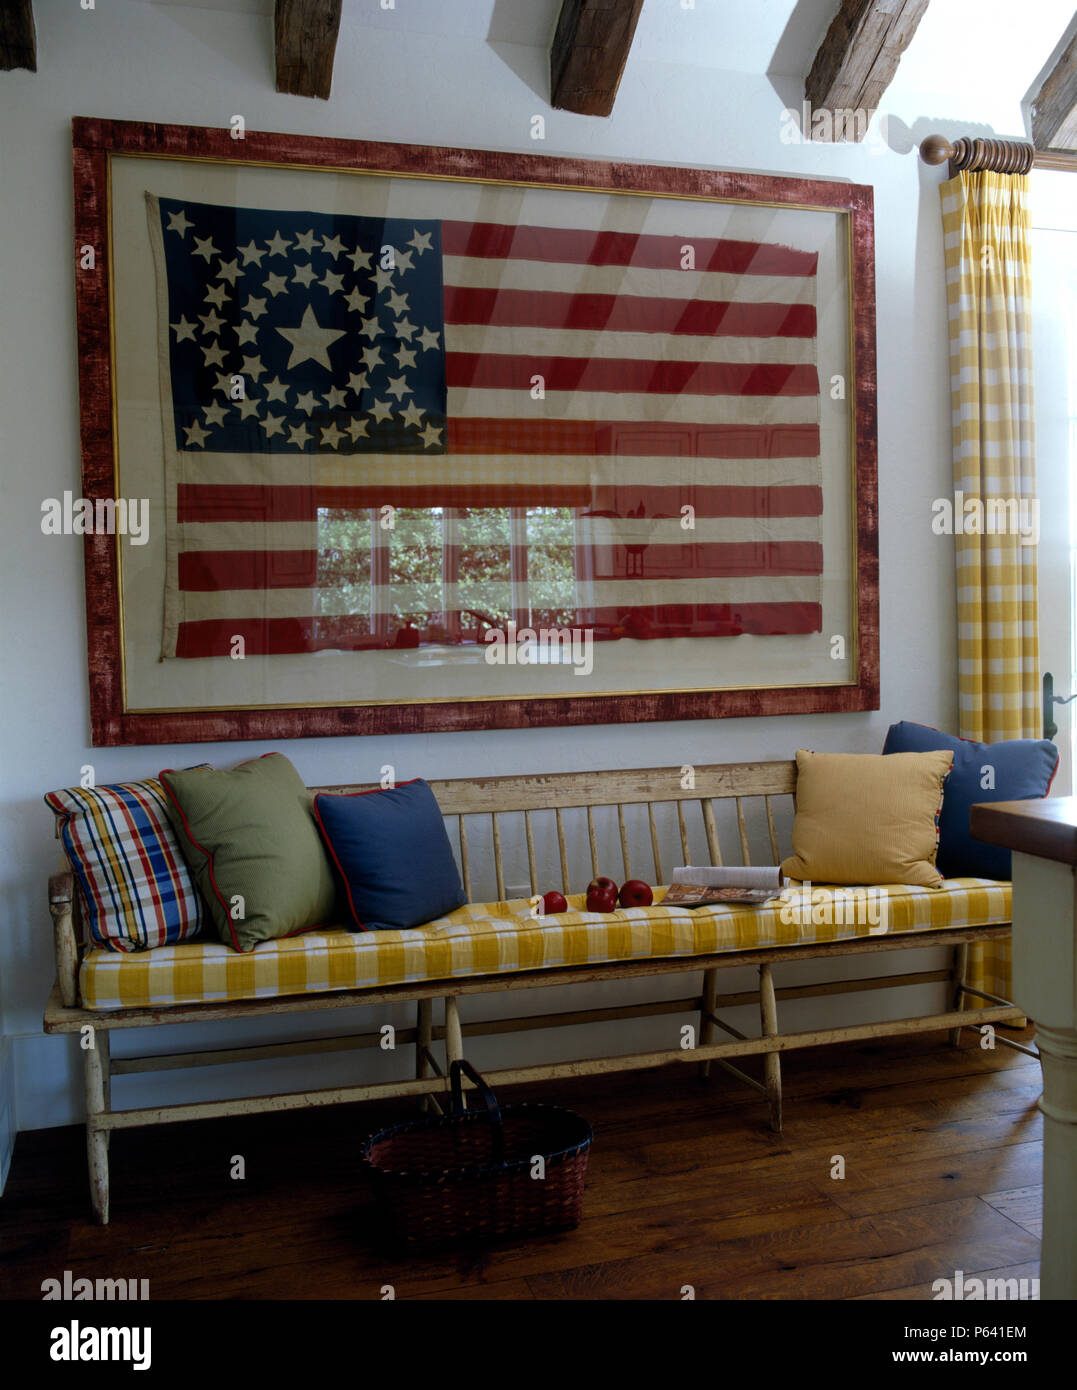 American Flag Framed Stock Photos & American Flag Framed Stock ...